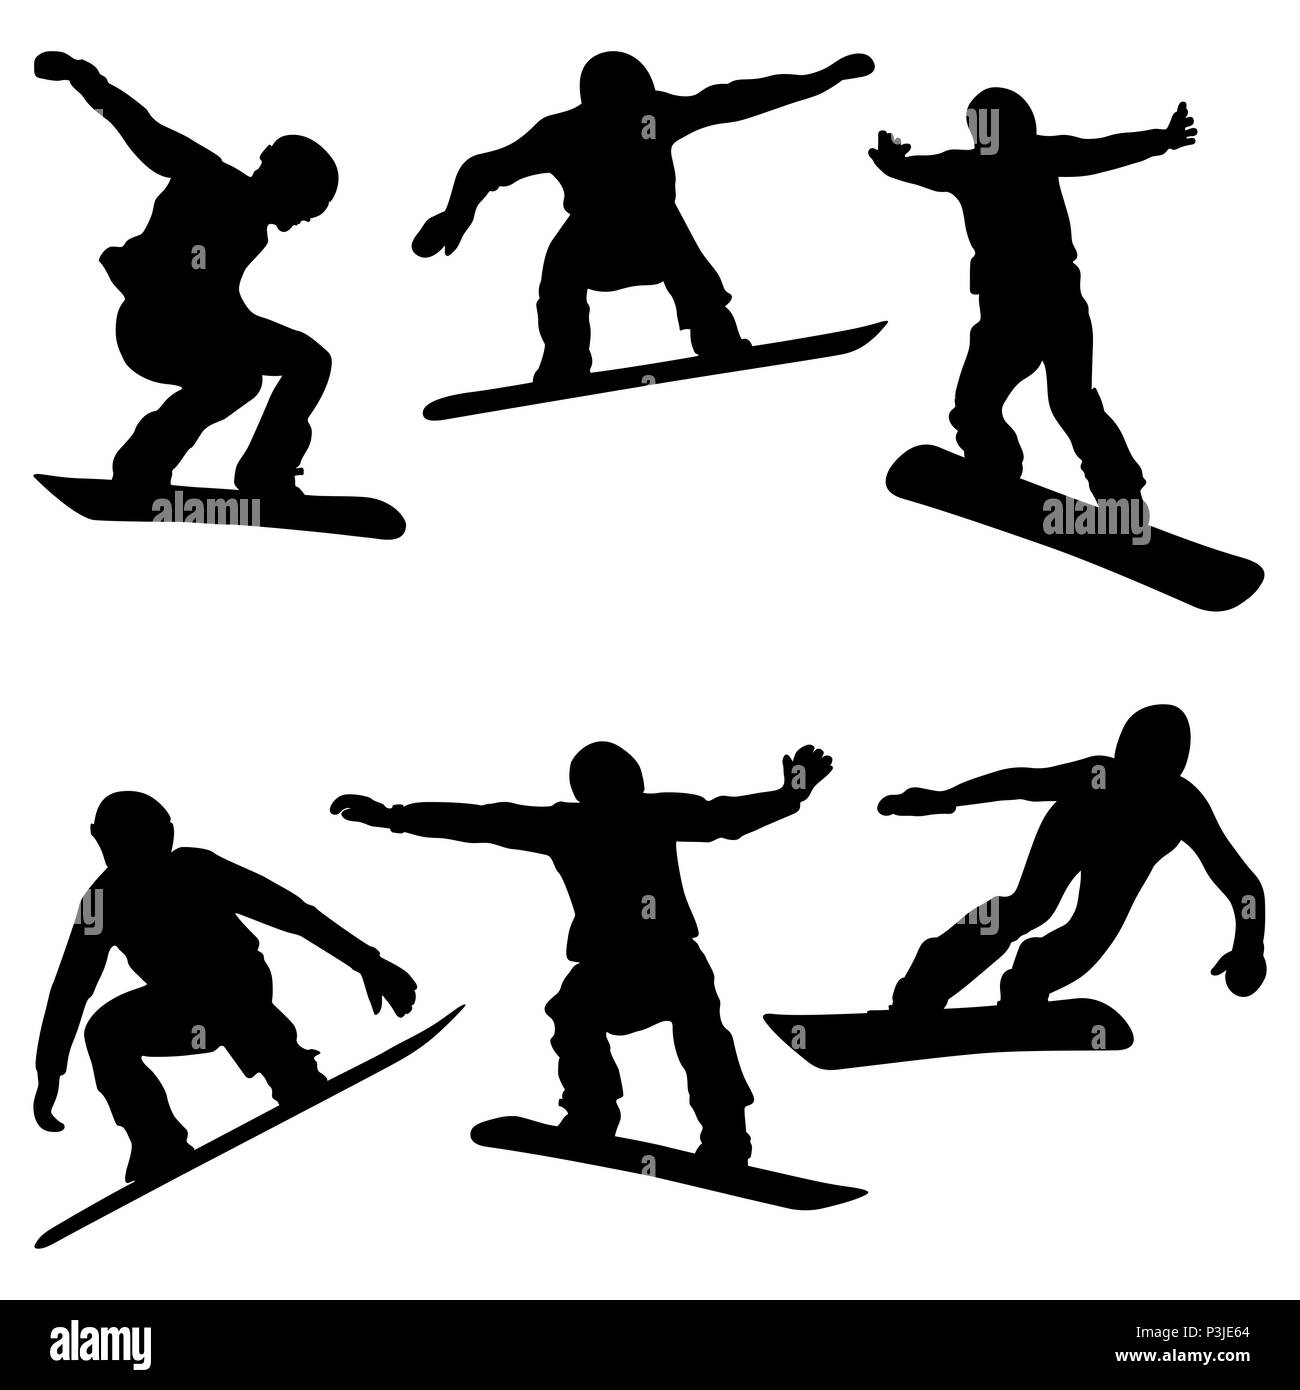 set athletes snowboarders black silhouette snowboard competition - Stock Image